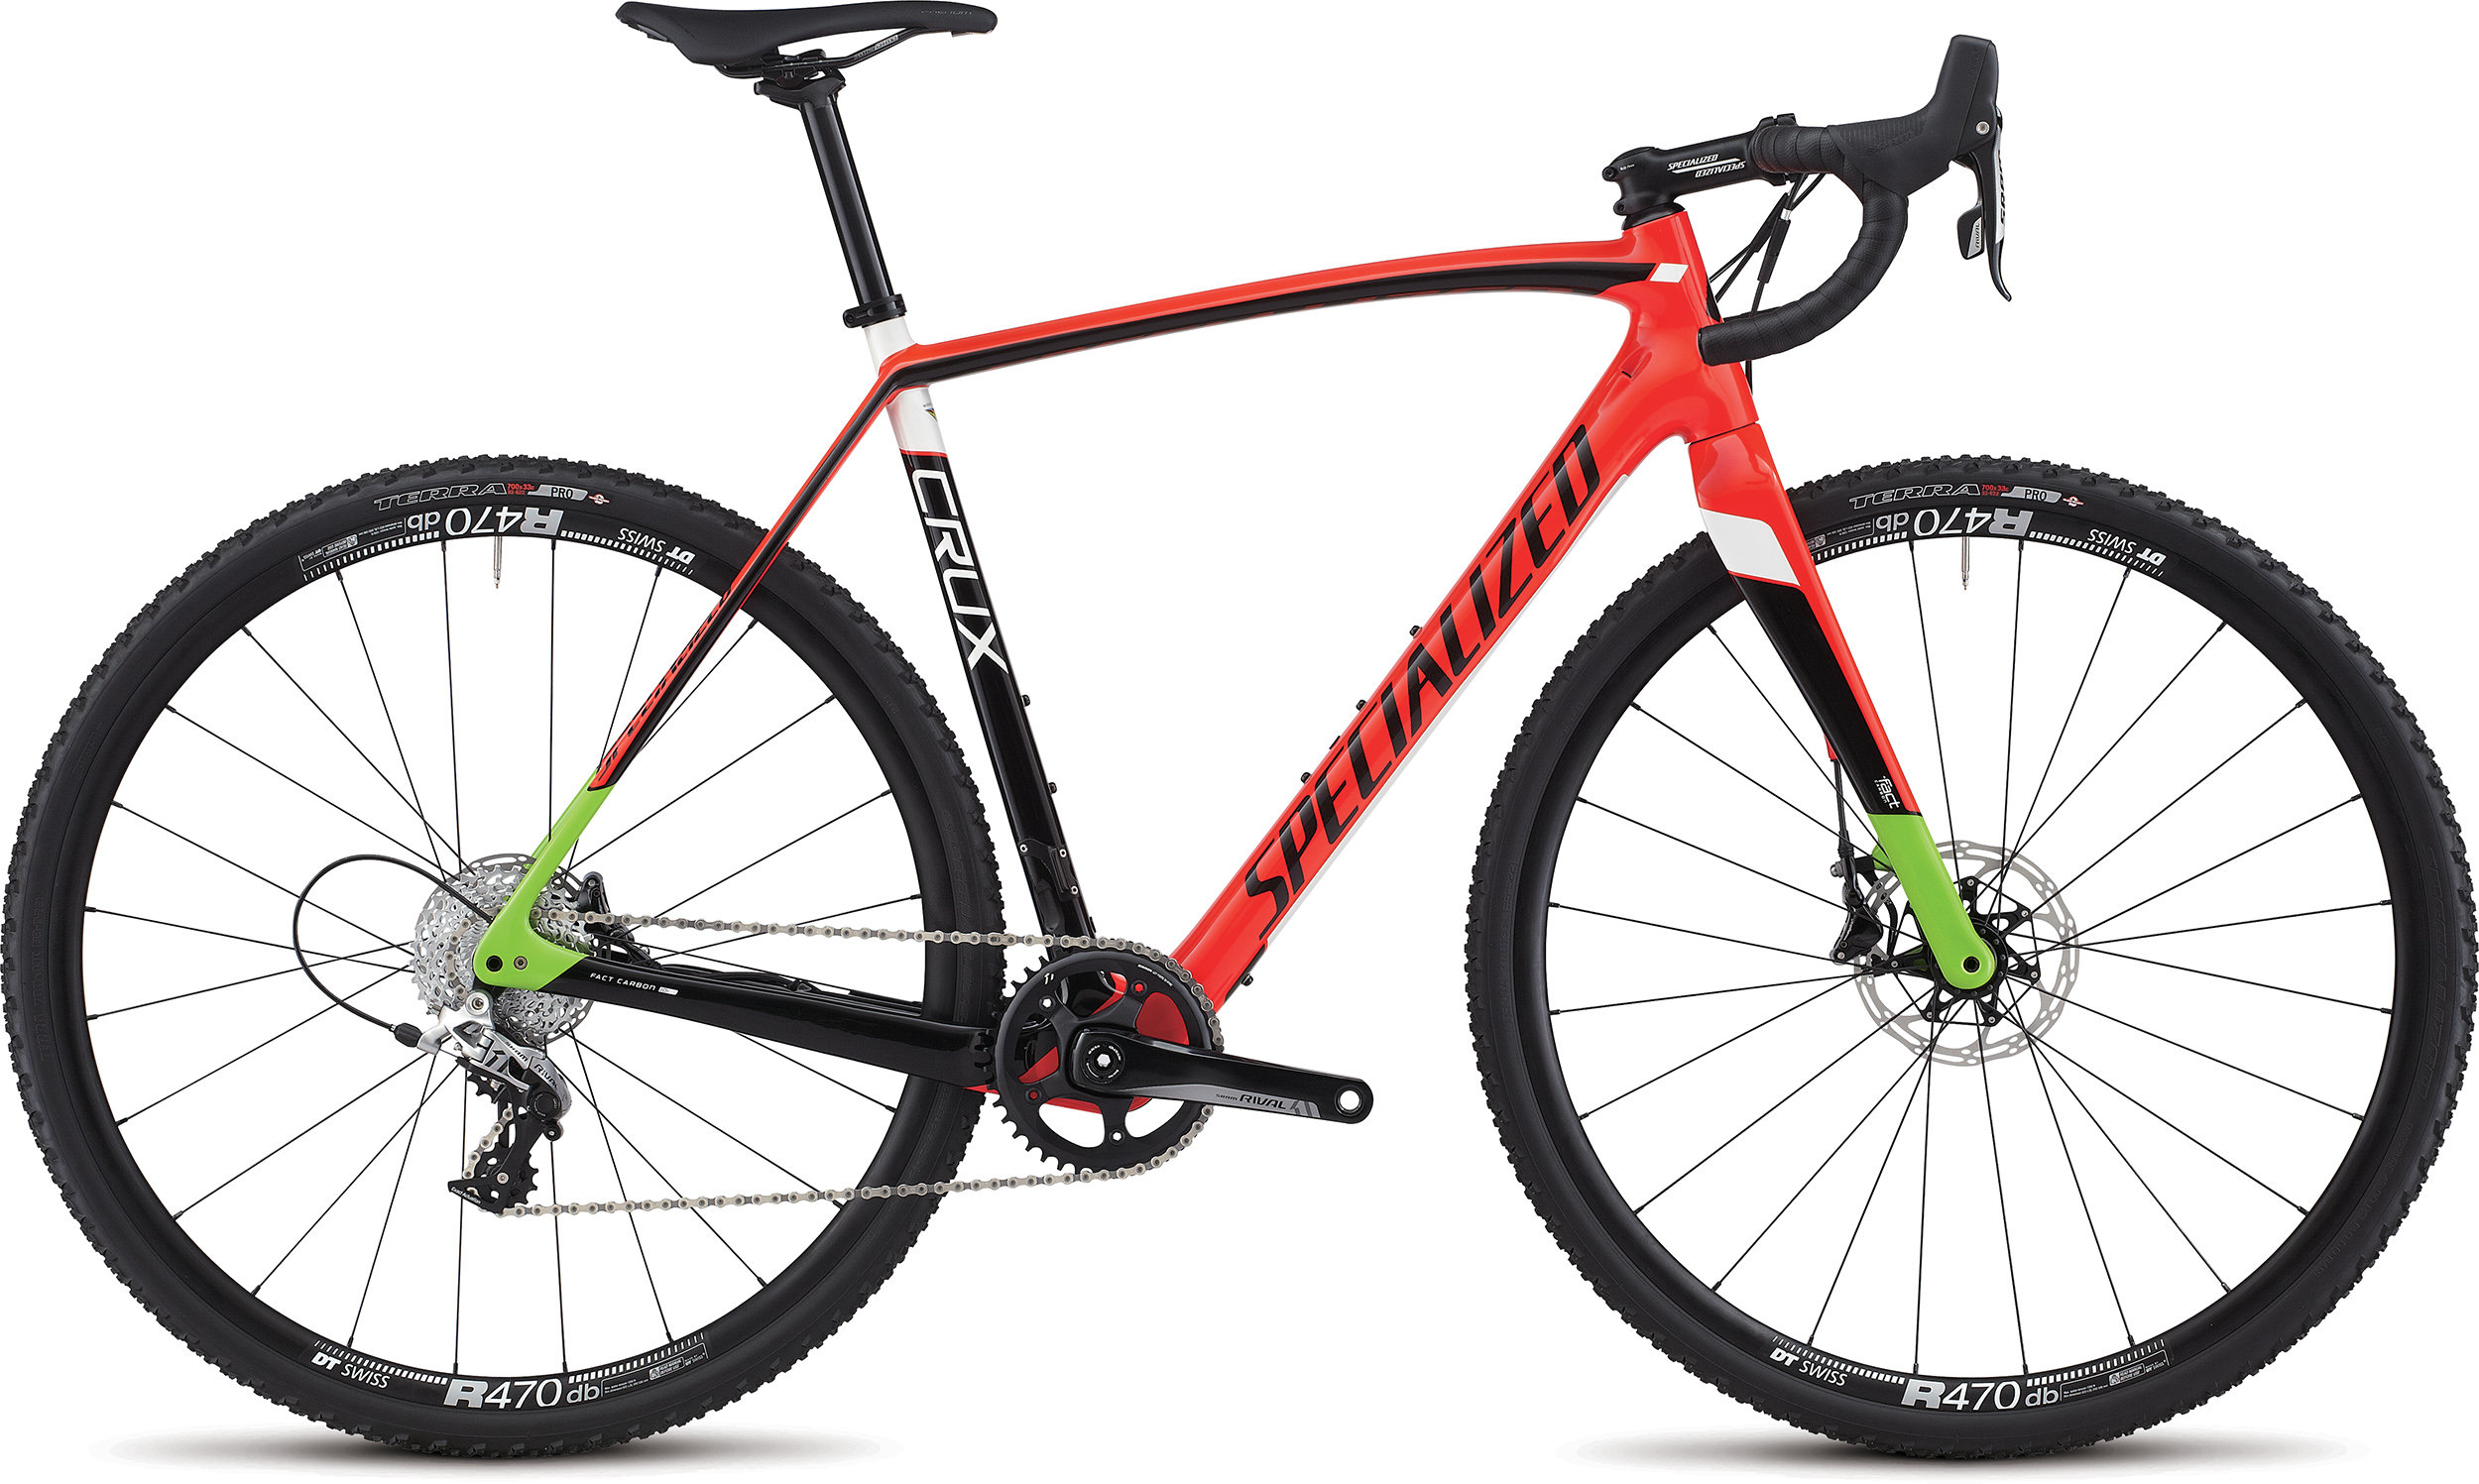 SPECIALIZED CRUX ELITE X1 RKTRED/TARBLK/MONGRN 46 - Bike Zone